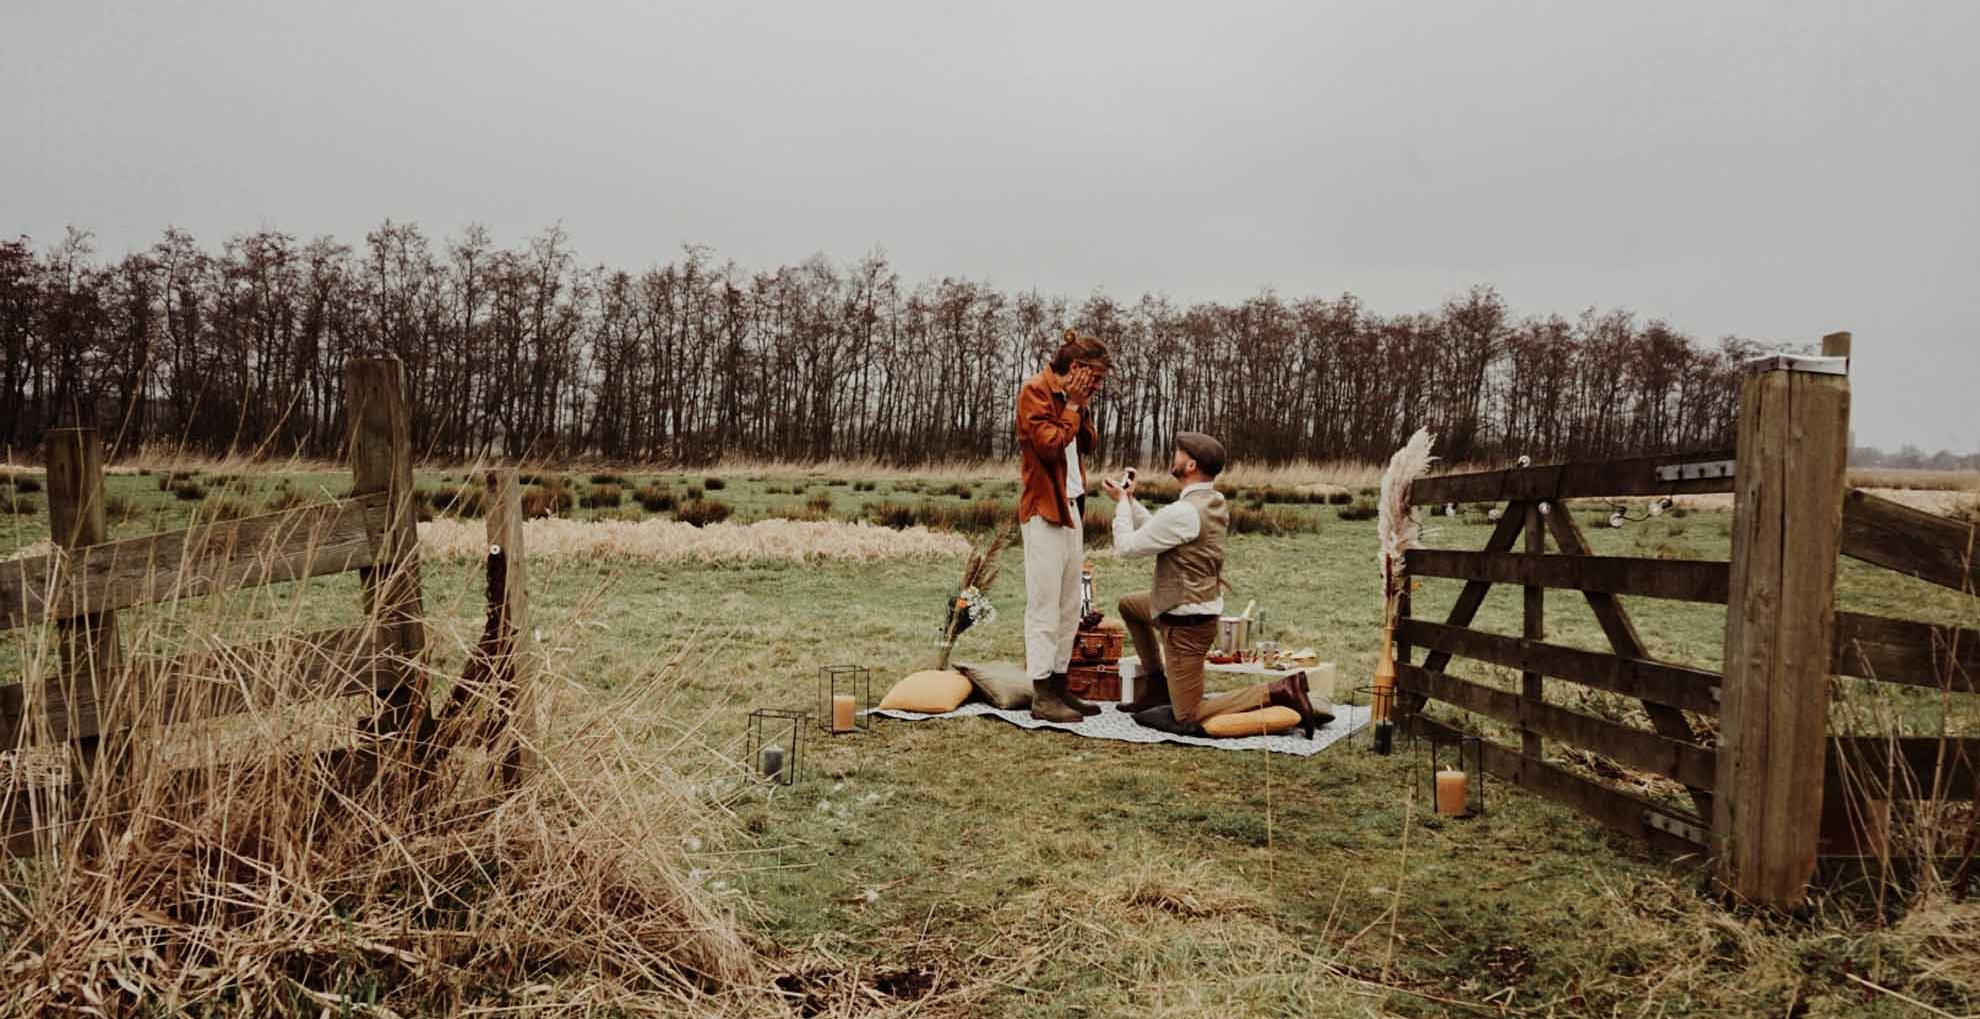 Romantic Picnic Proposal The Travelling Wedding Planner Amsterdam Europe LGBTQ+ gay queer two grooms engagement proposal Dancing With Them